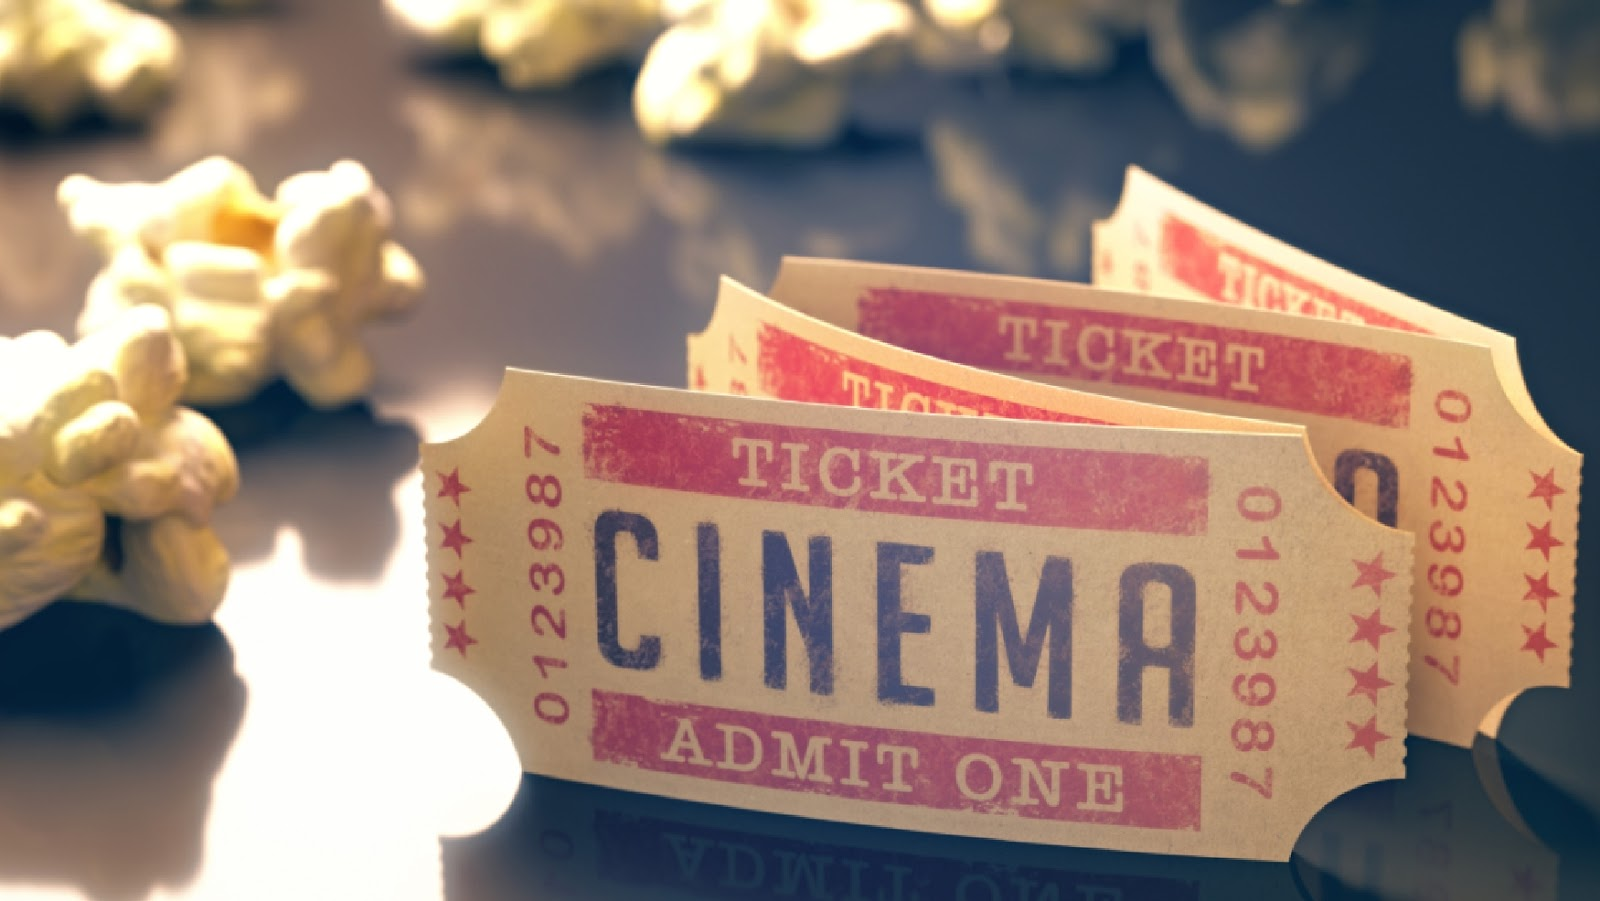 A couple of cinema tickets in front of scattered popcorn.